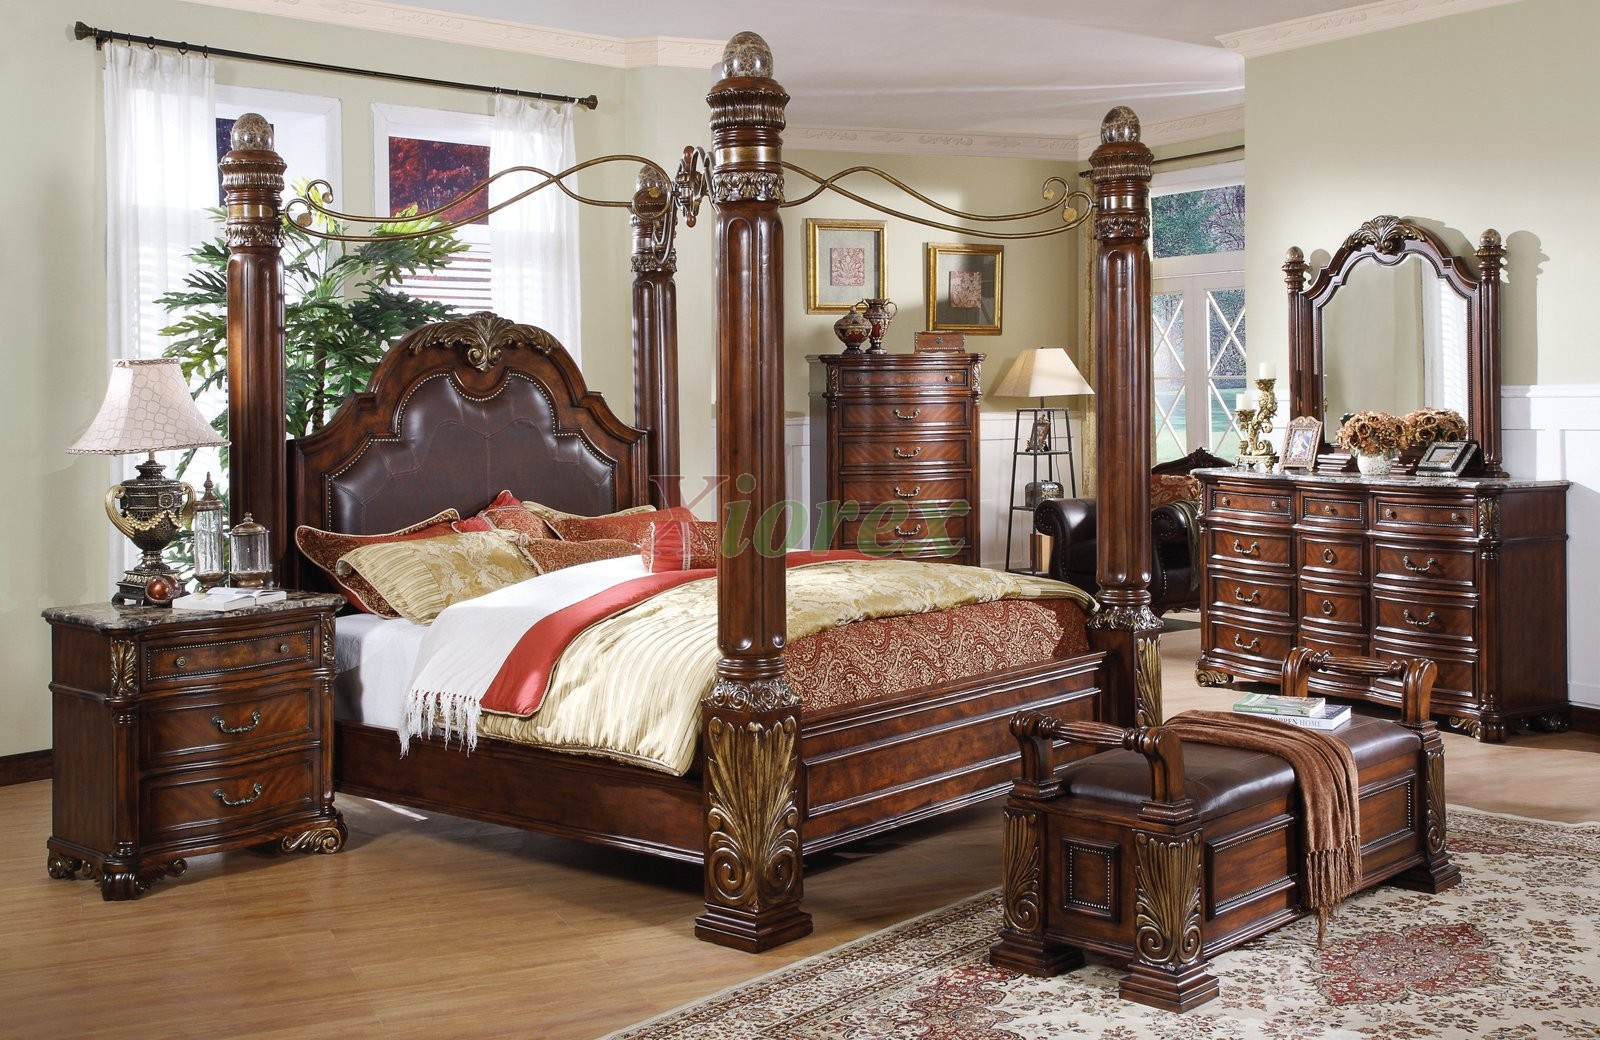 https://www.xiorex.com/media/catalog/product/cache/1/image/ce917ae61abb794fb66945dcc312e713/t/r/traditional_poster_bedroom_furniture_set_with_metal_canopy_and_leather_headboard_-_tdc0000100-2.jpg